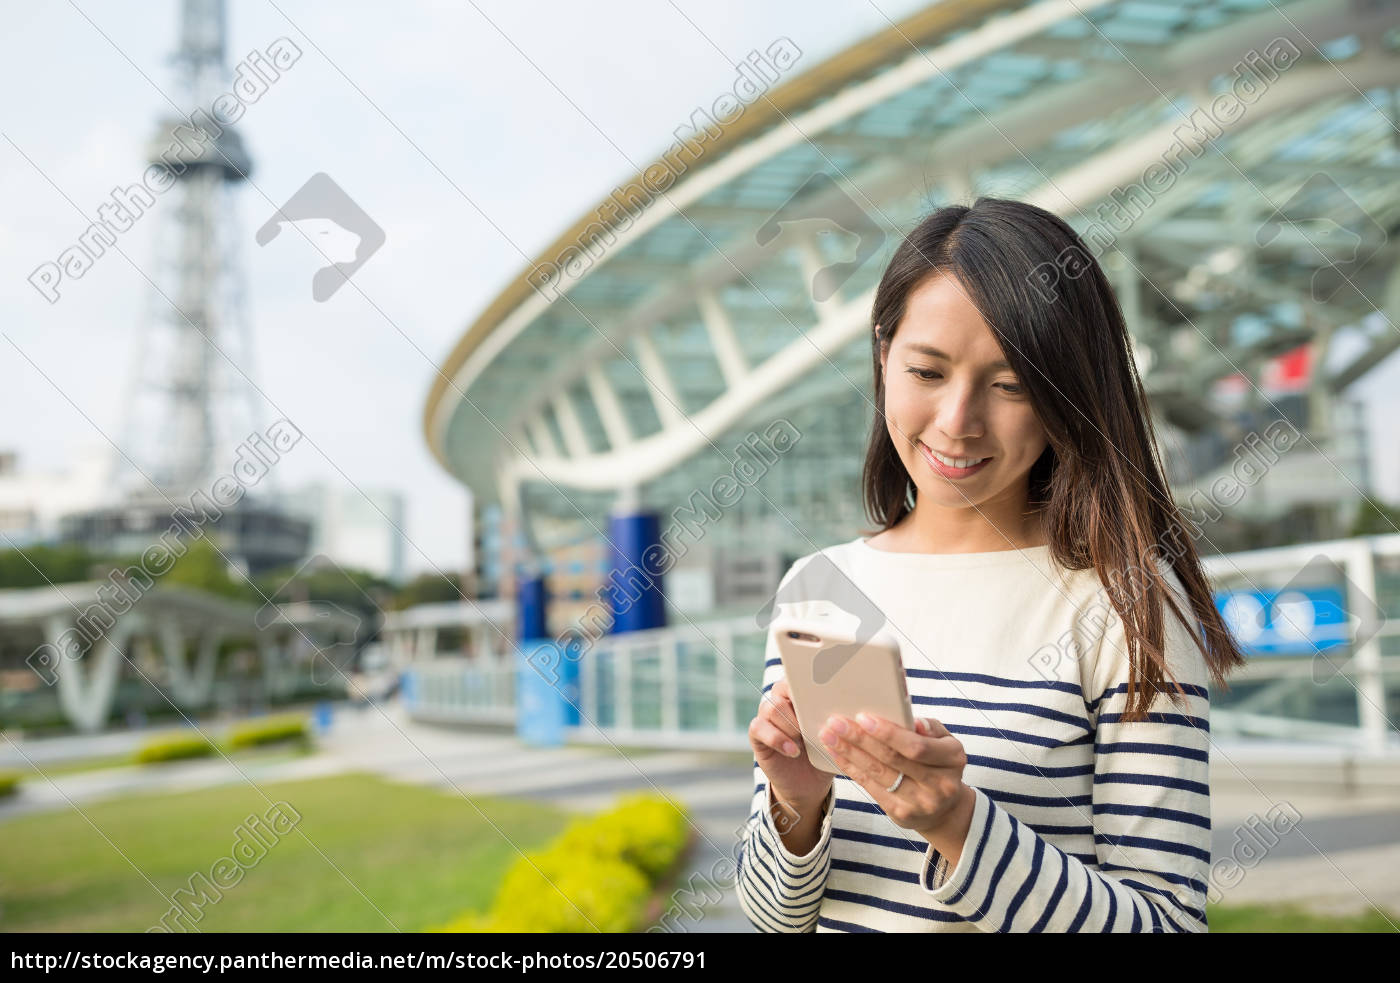 woman, using, cellphone, in, nagoya, city - 20506791